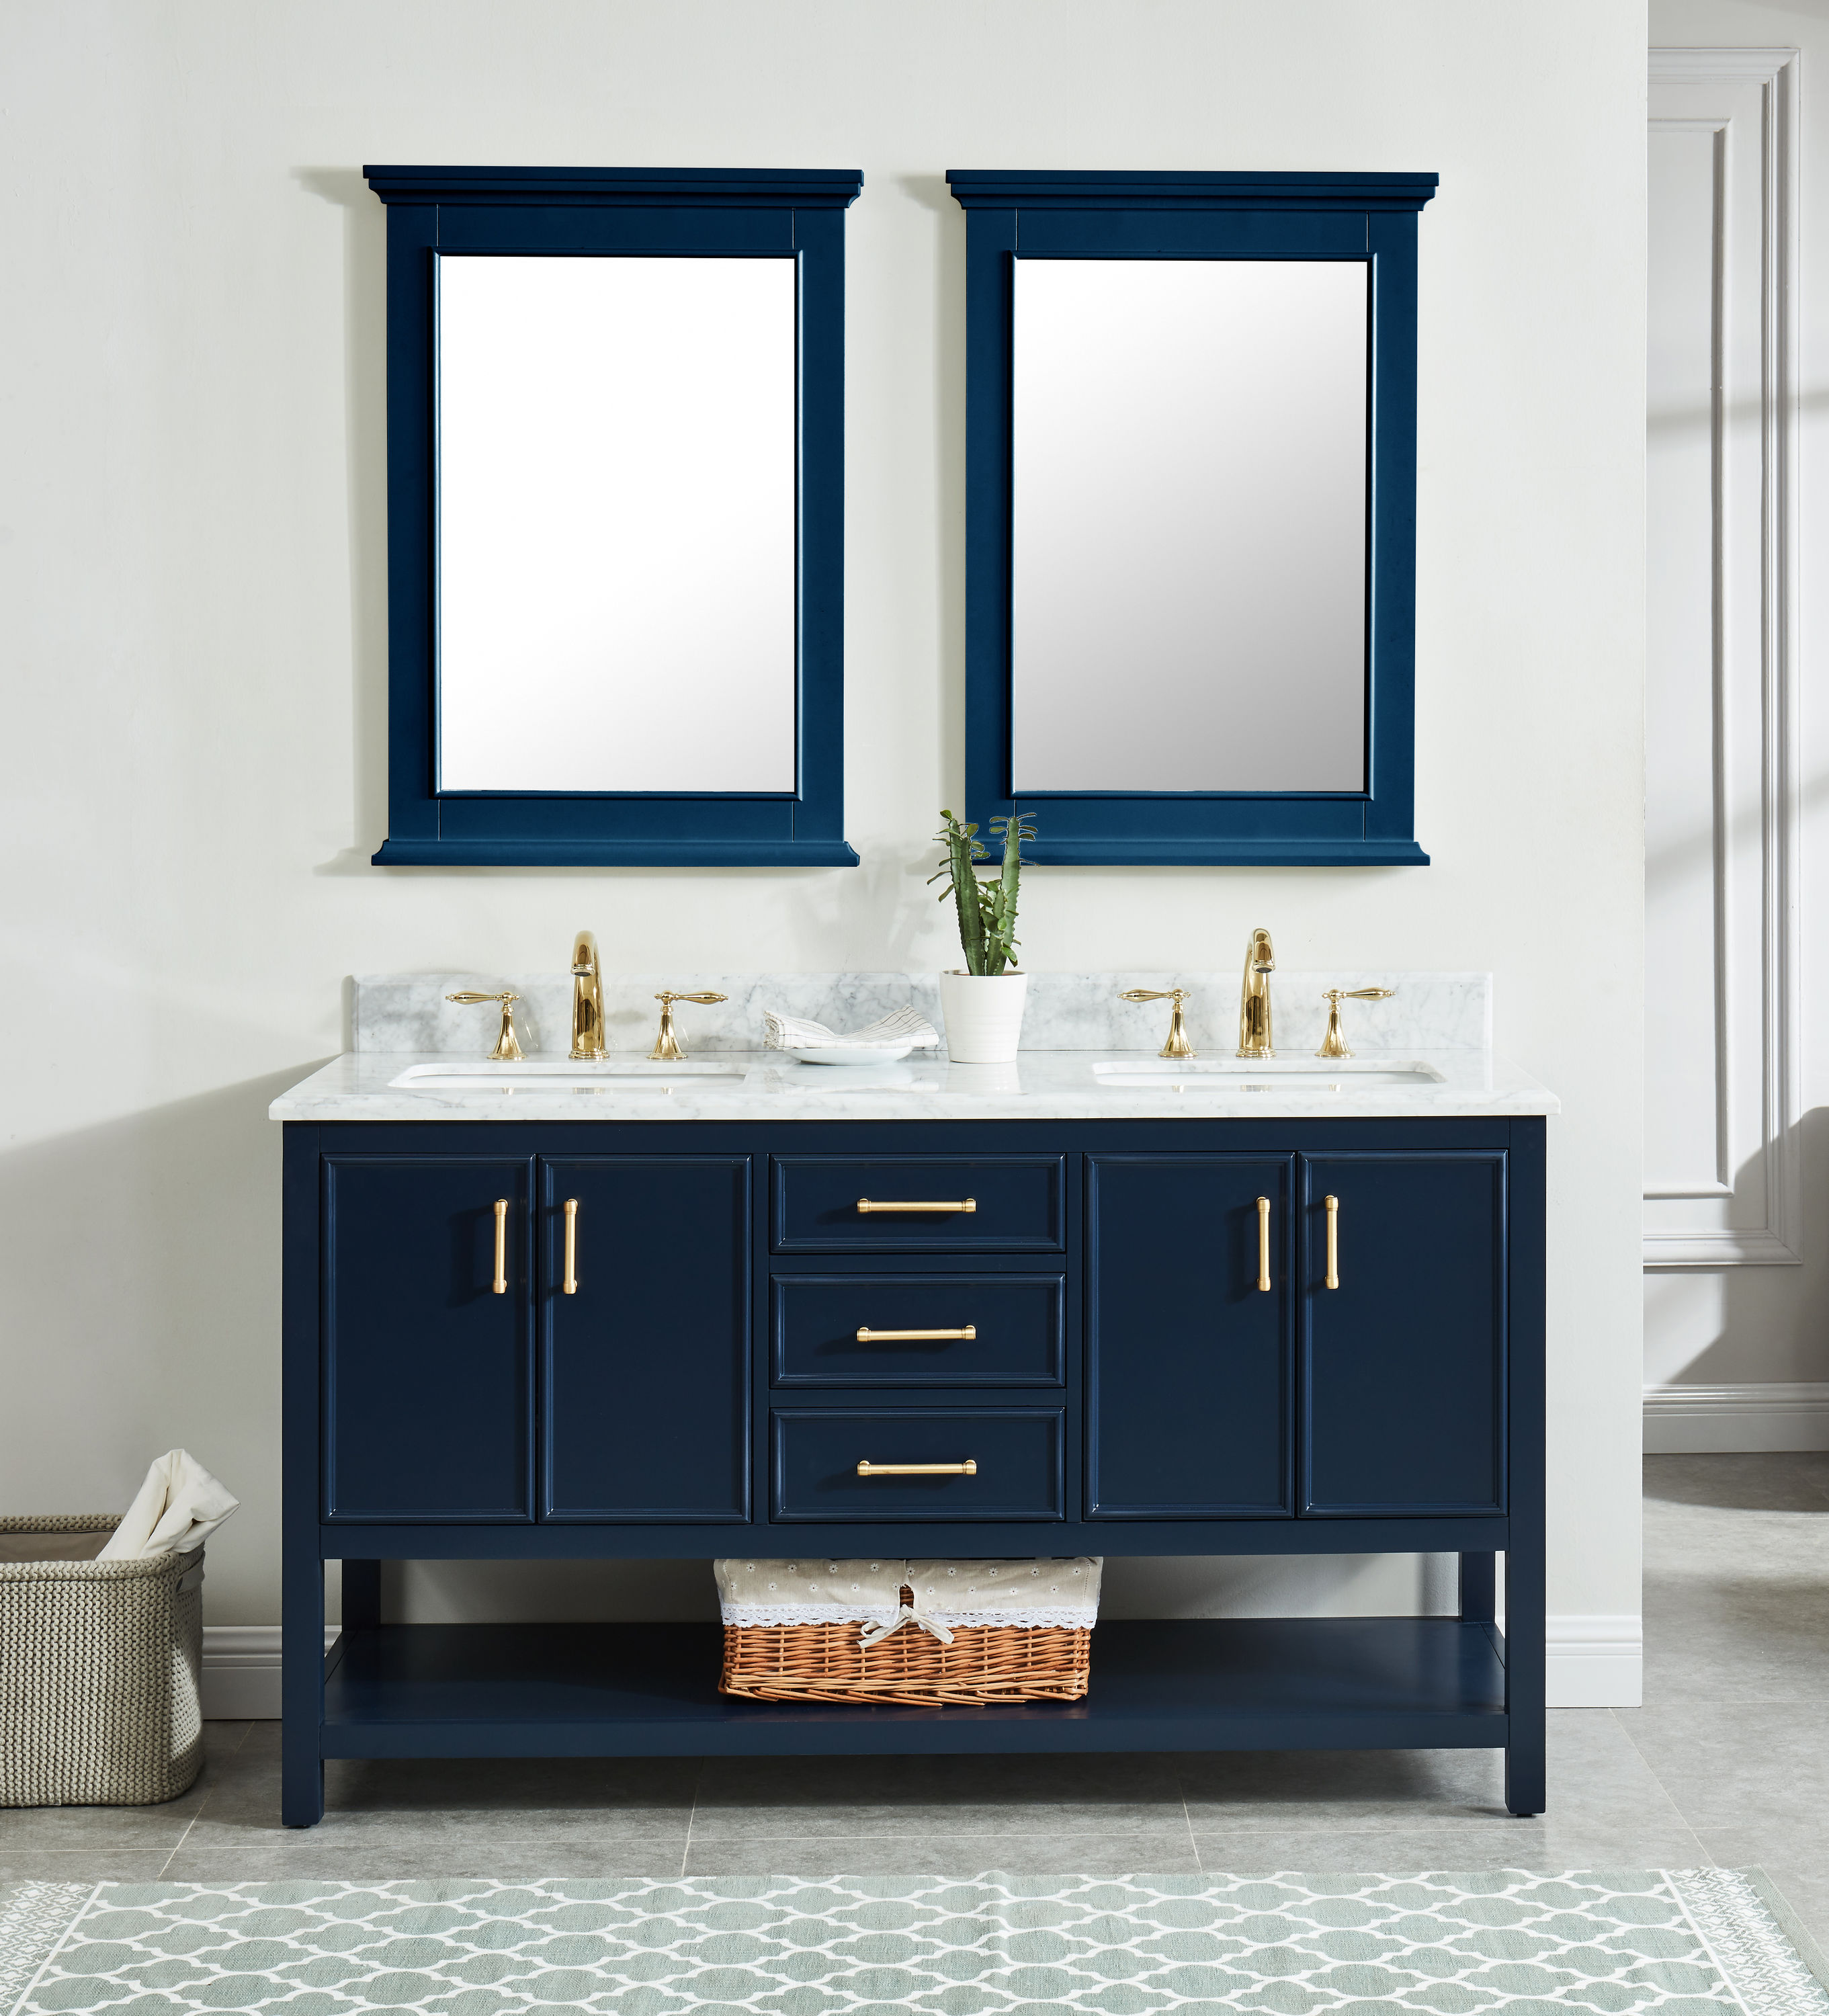 allen + roth Presnell 20 in Navy Blue Undermount Double Sink Bathroom  Vanity with Carrara White Natural Marble Top